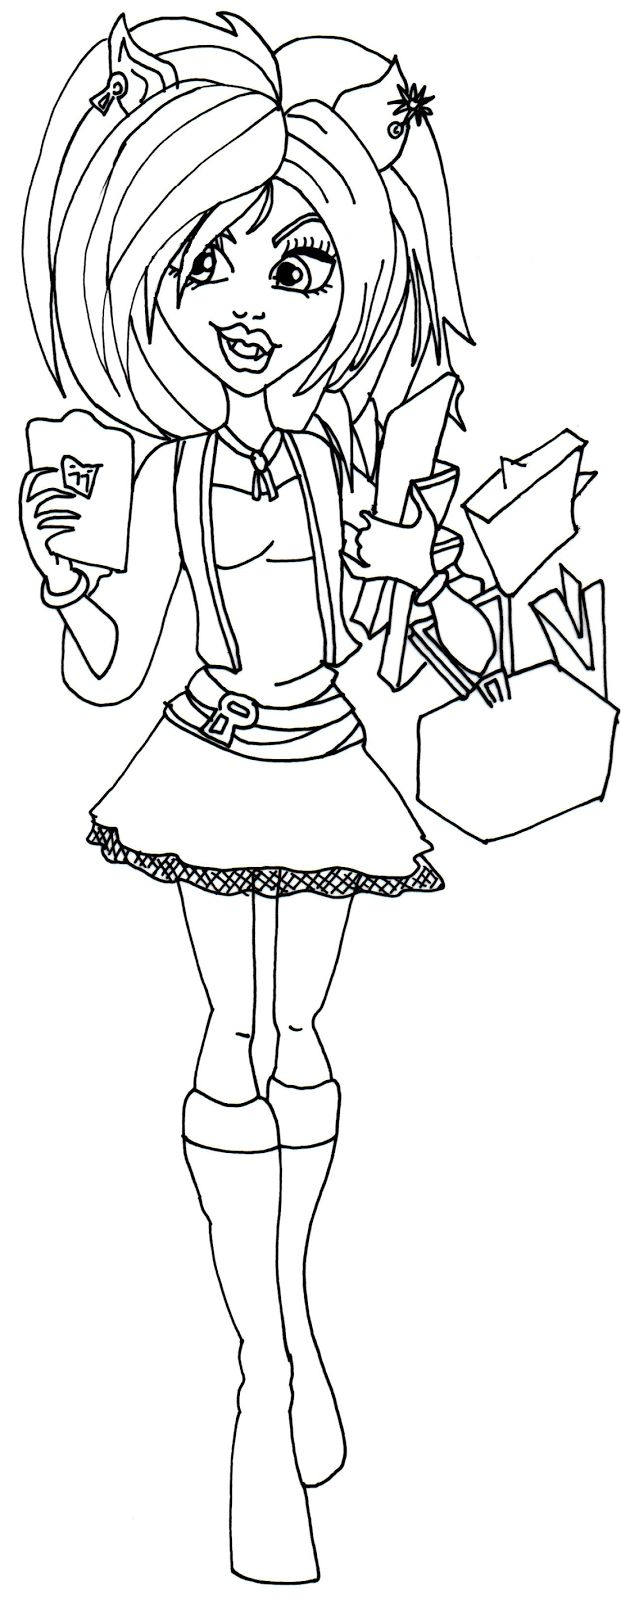 Monster High Clawdeen Wolf Coloring Pages Free Coloring Pages ...